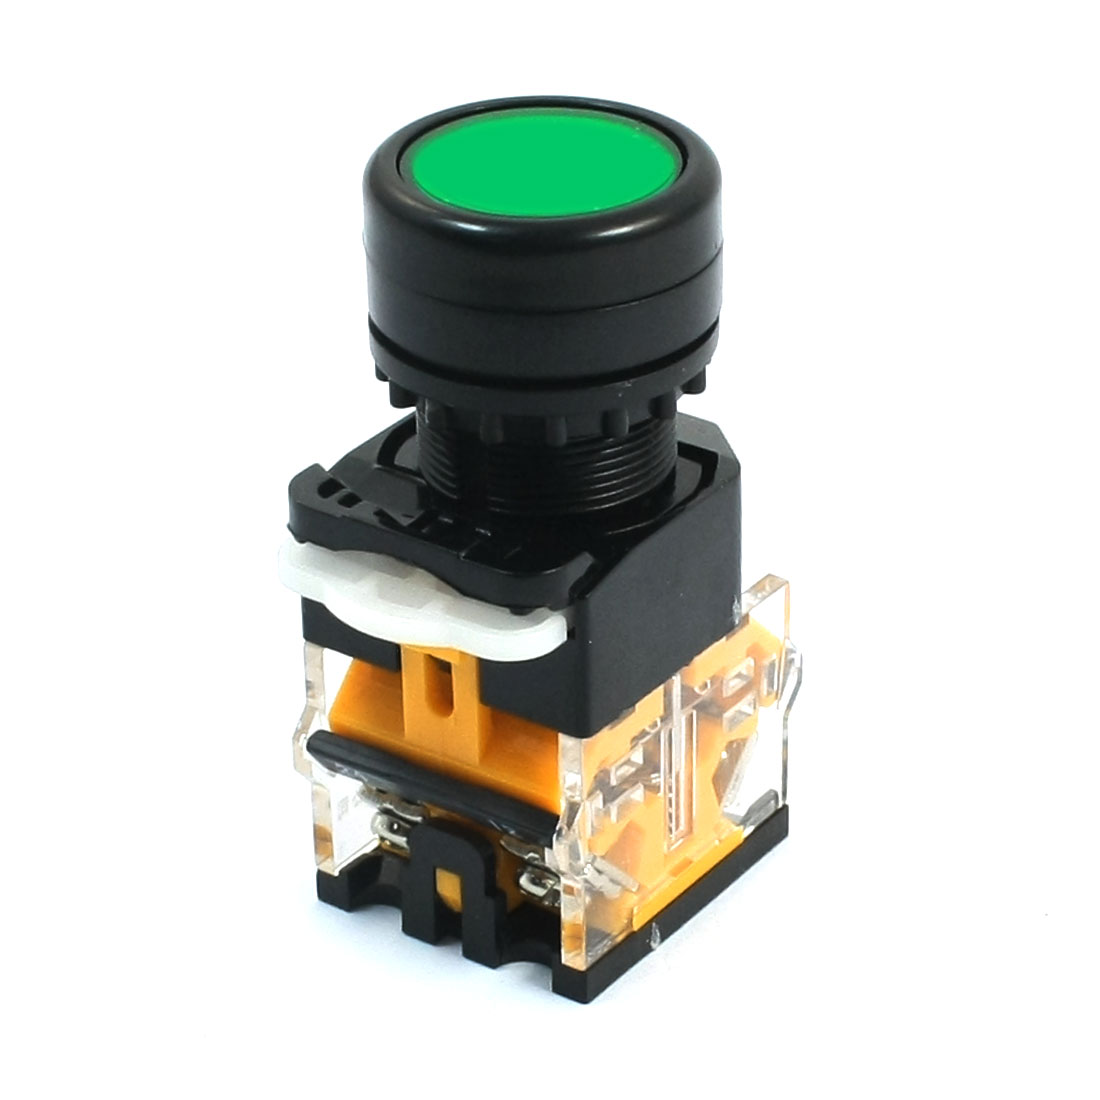 DPST 4 Screw Terminals Green Round Button Momentary Pushbutton Switch 600V 10A